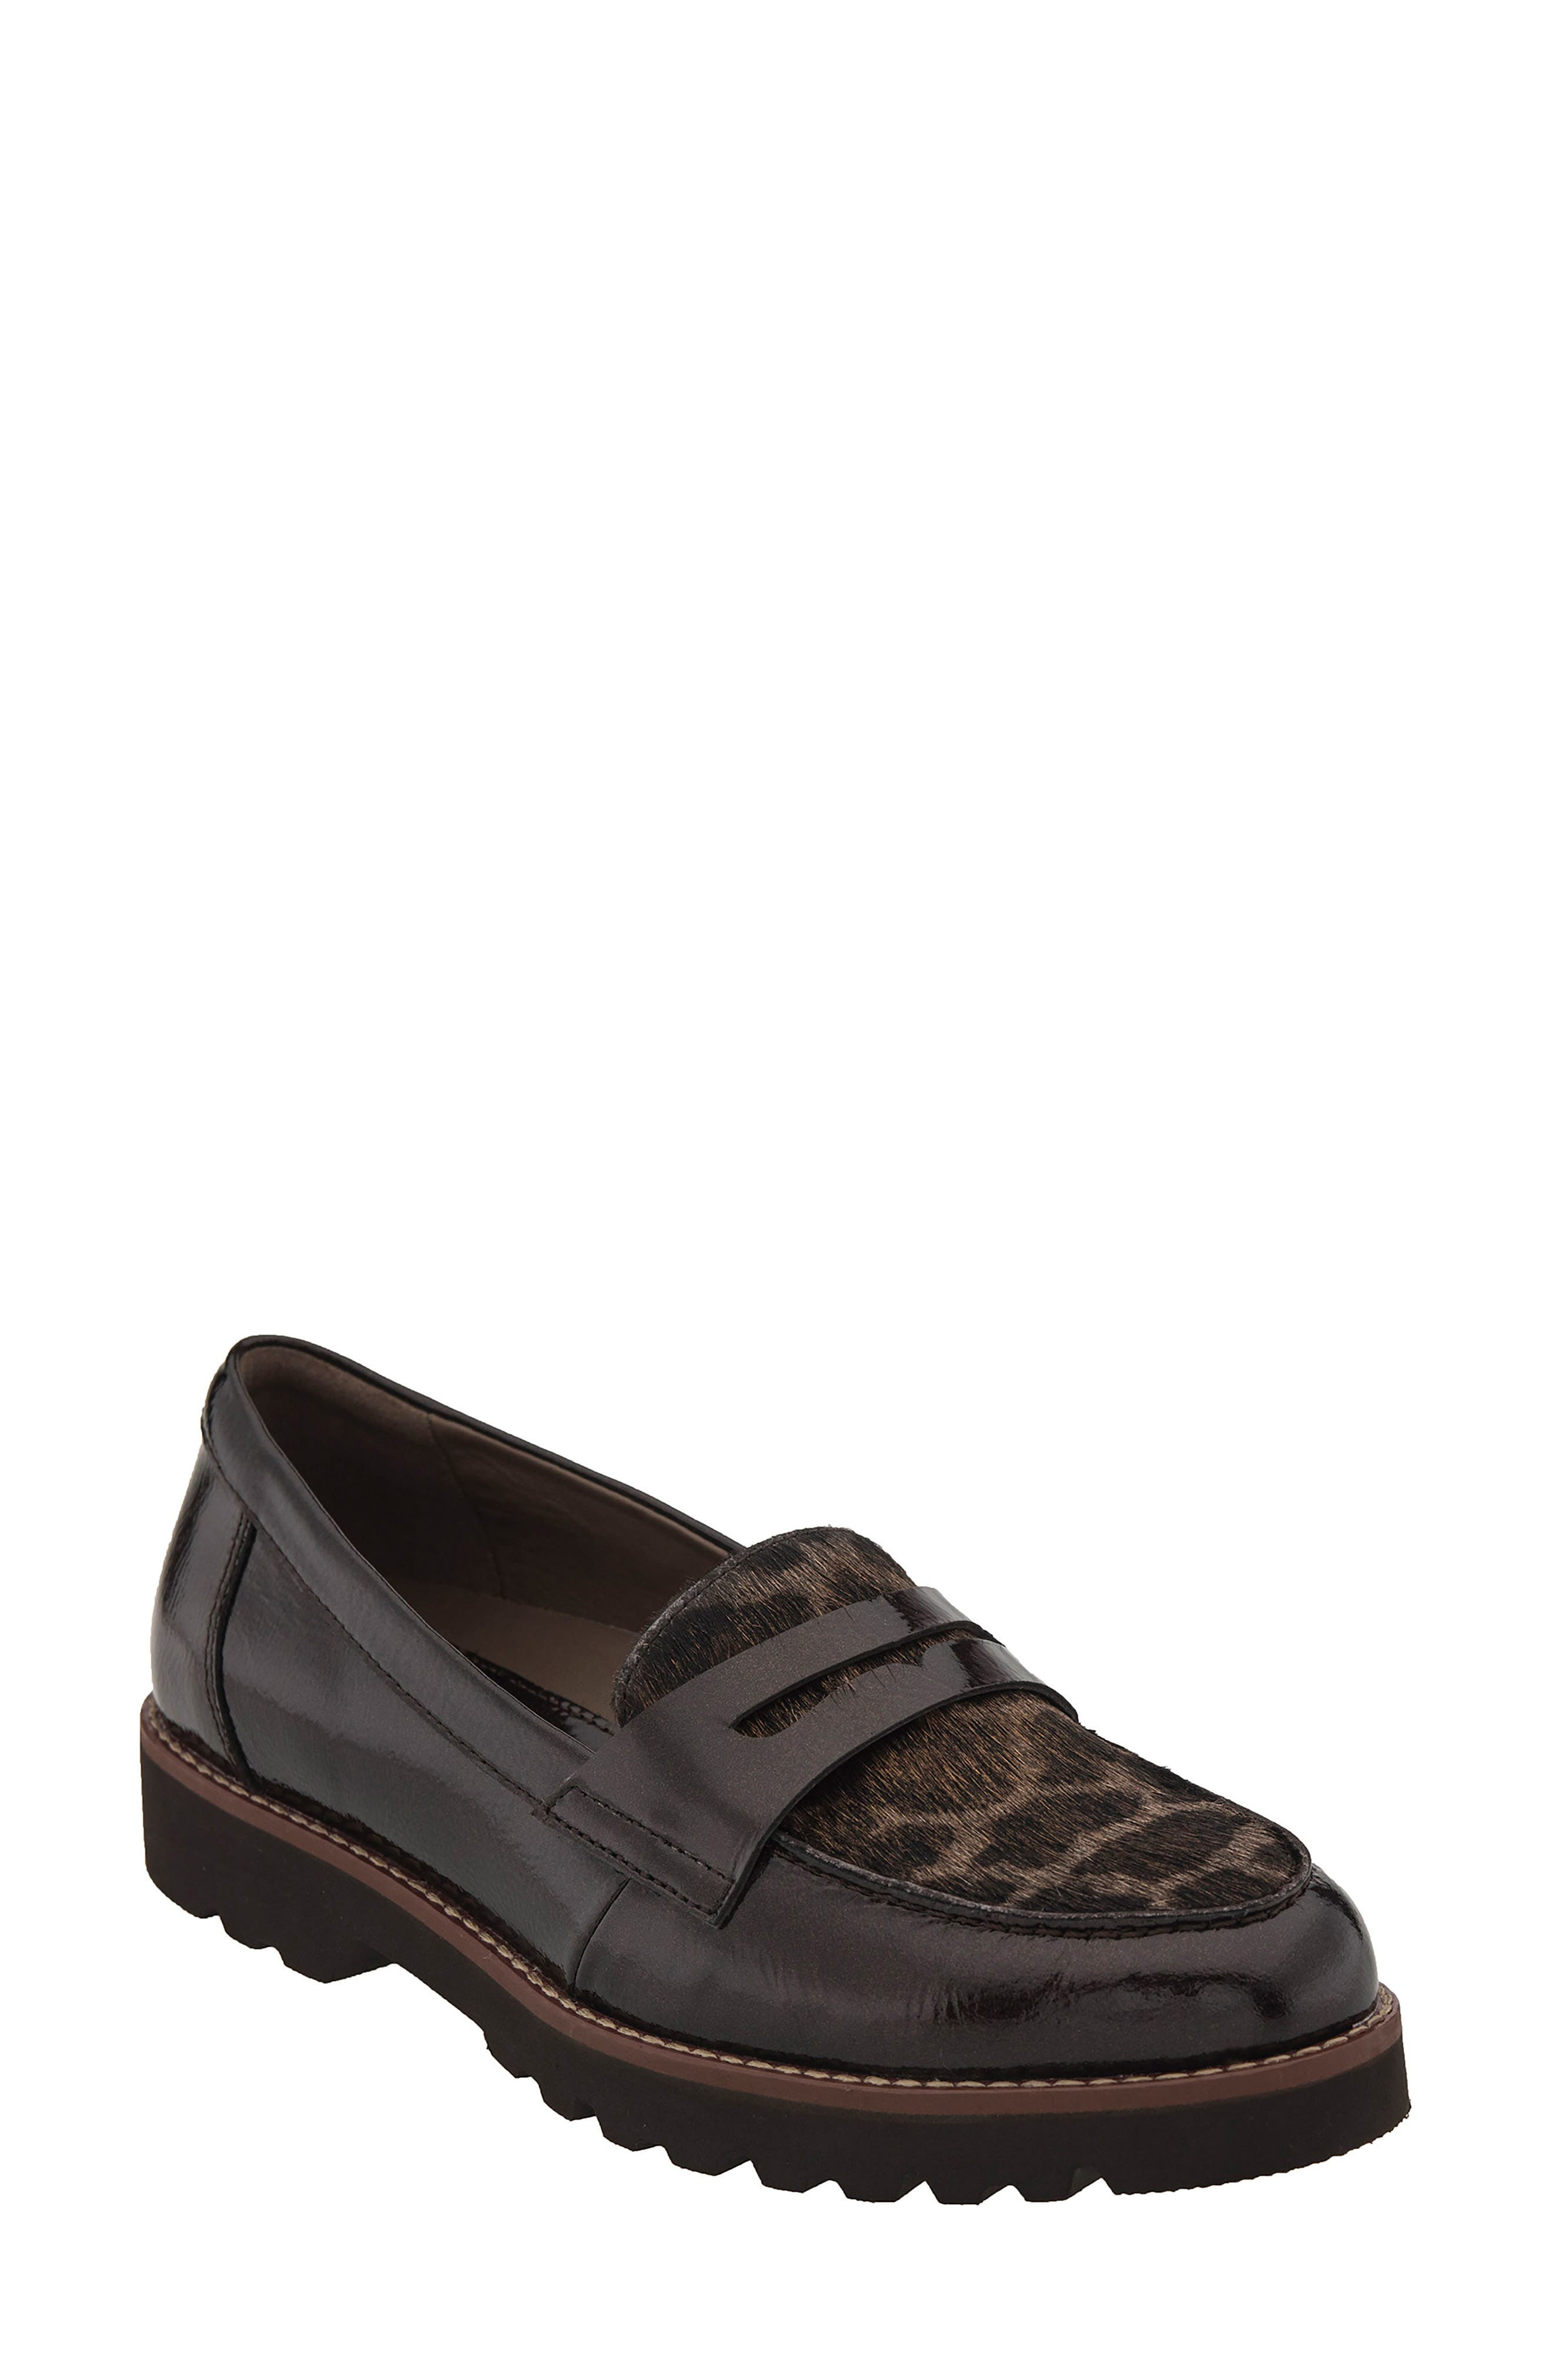 Alternate Image 1 Selected - Earthies Braga Leather & Genuine Calf Hair Loafer (Women)